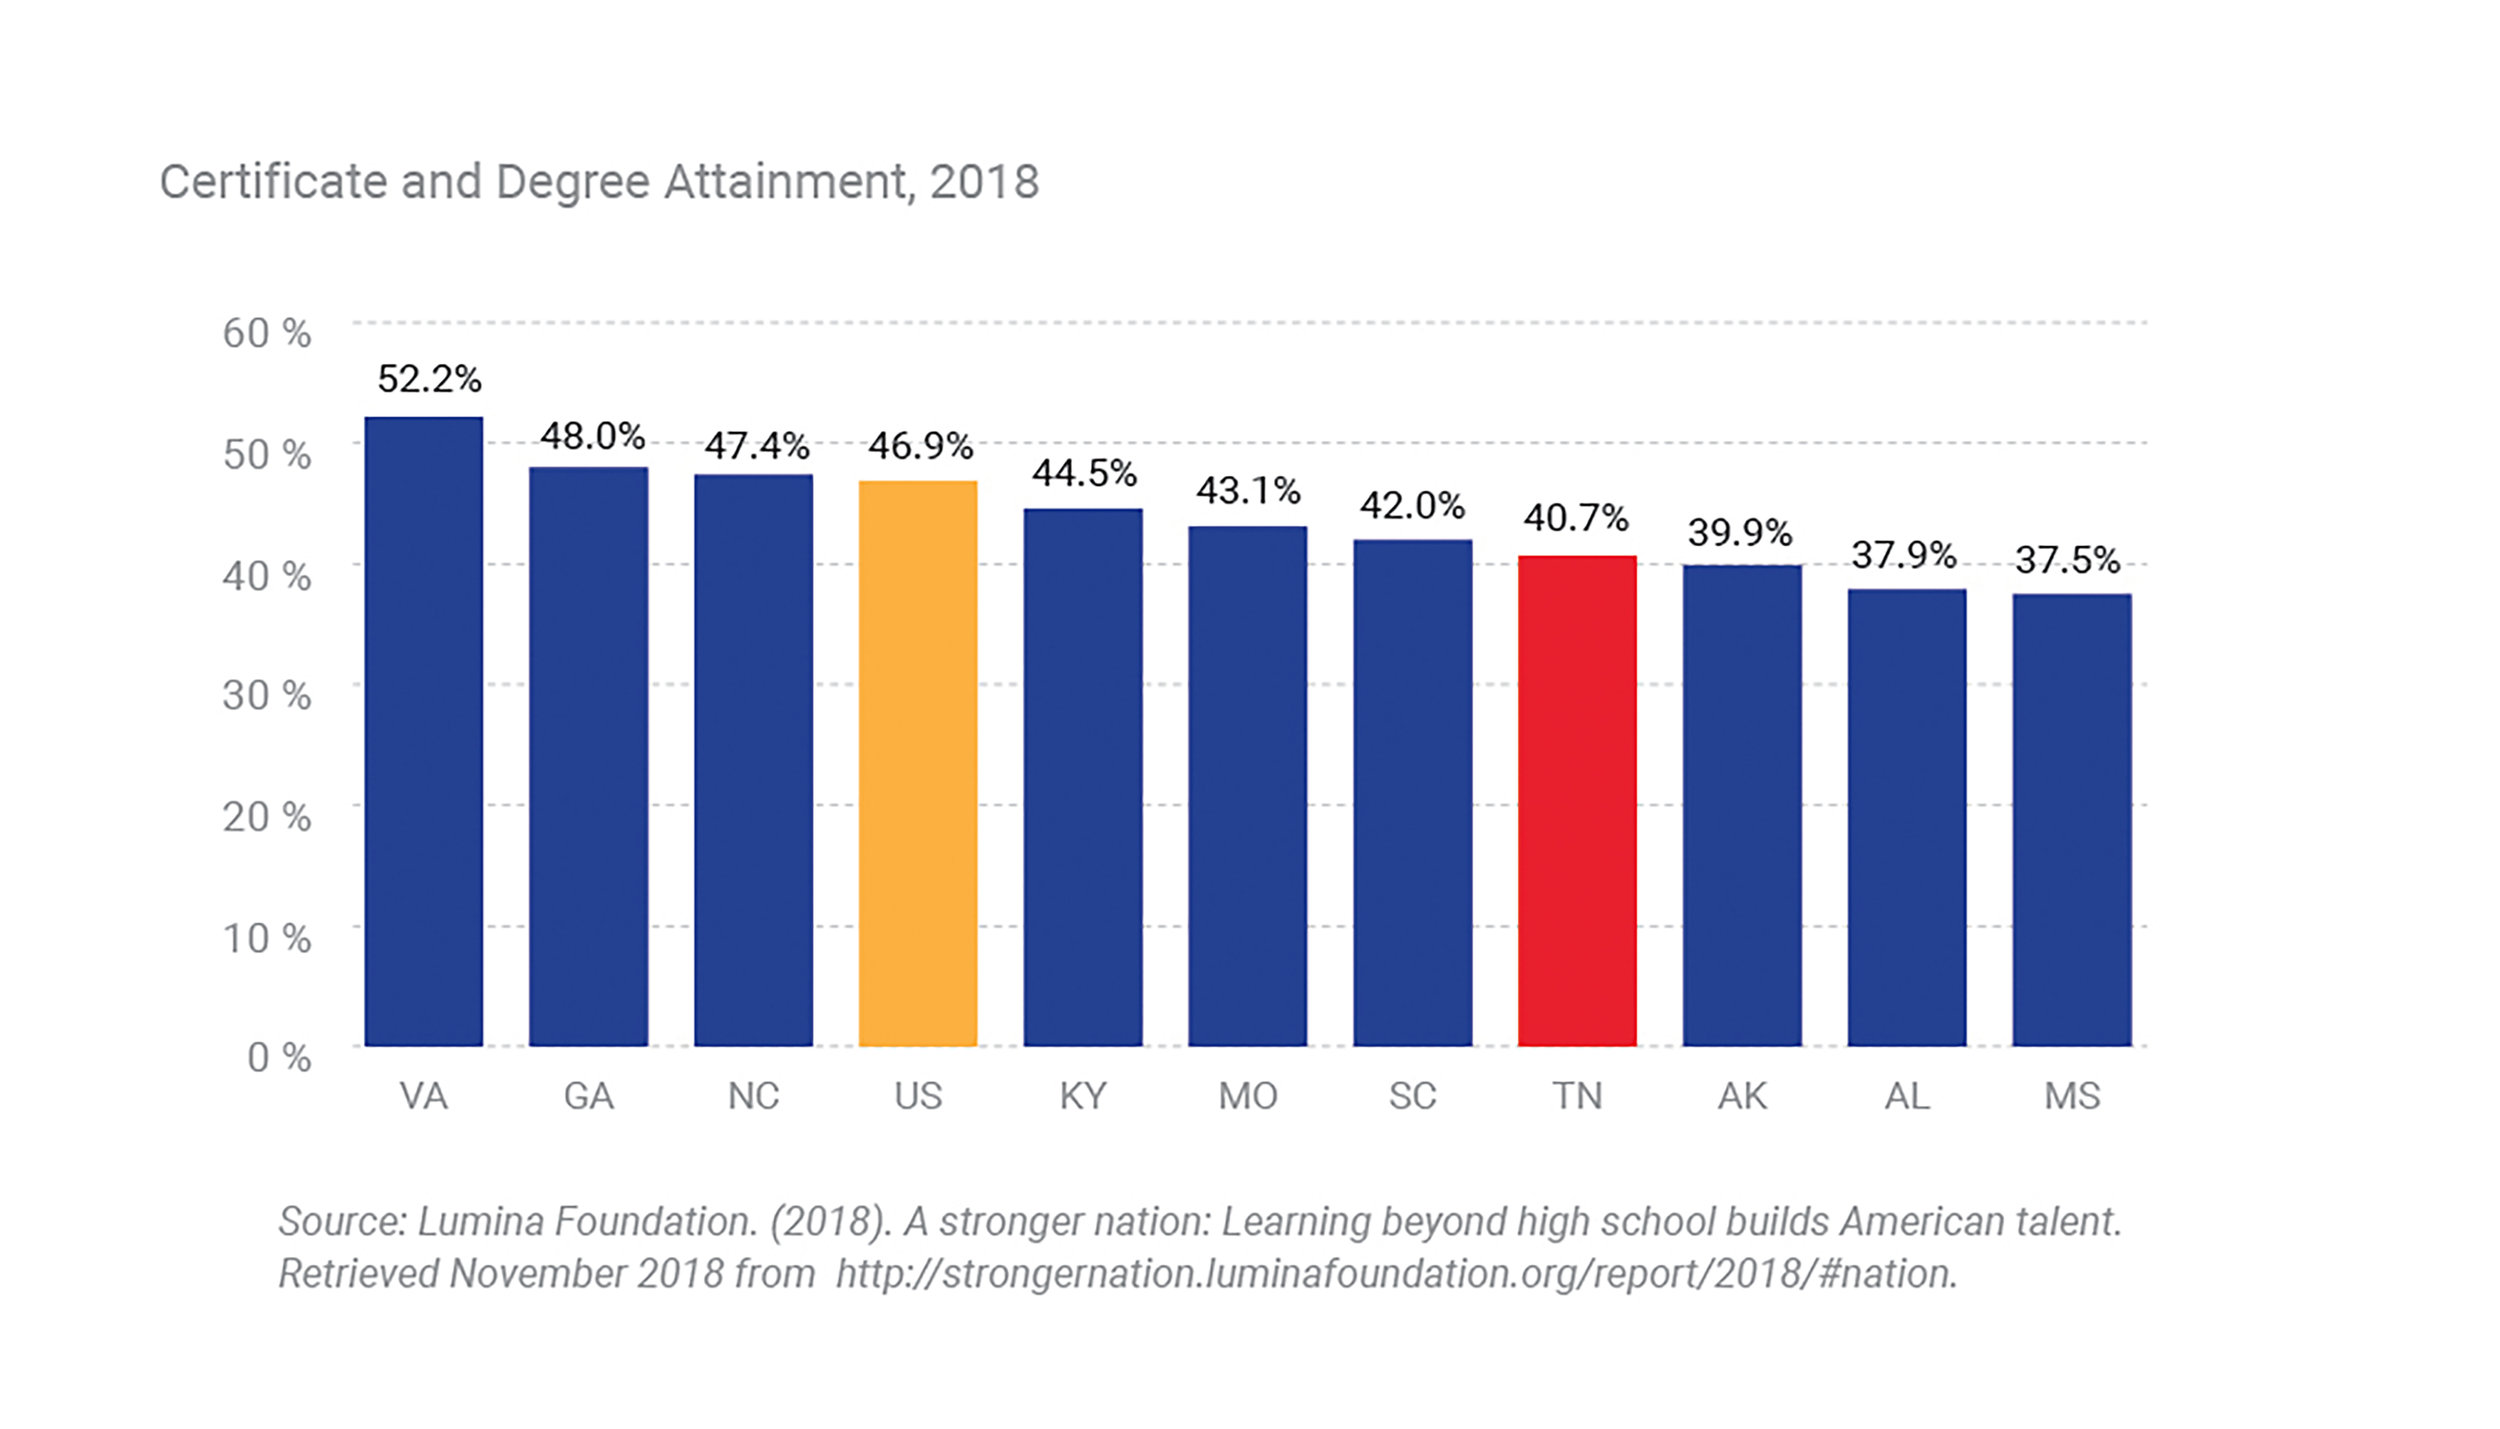 Certificate-and-Degree-Attainment-2018.jpg